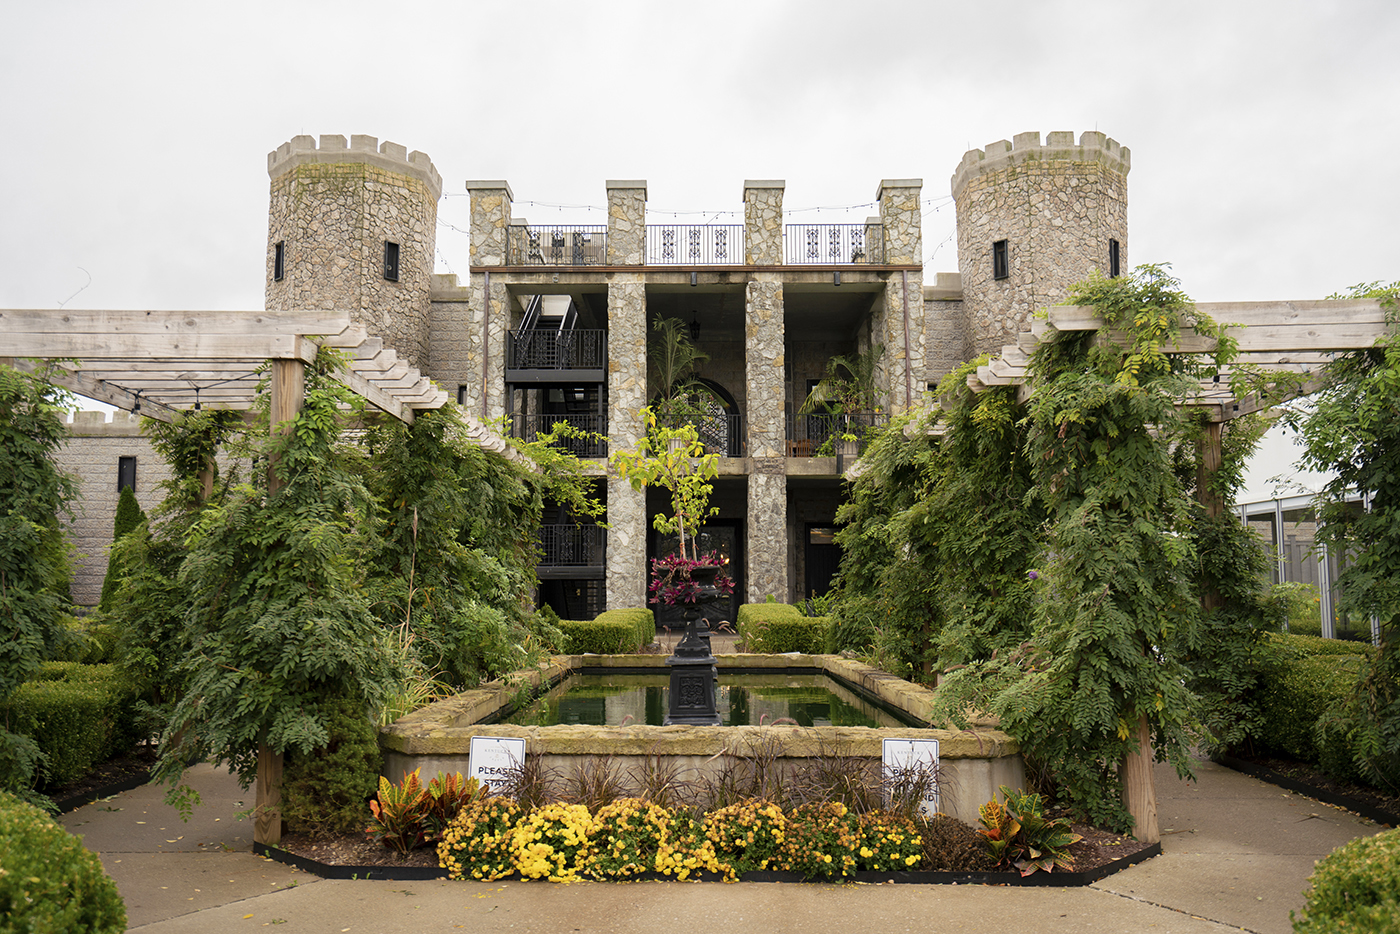 The Kentucky Castle